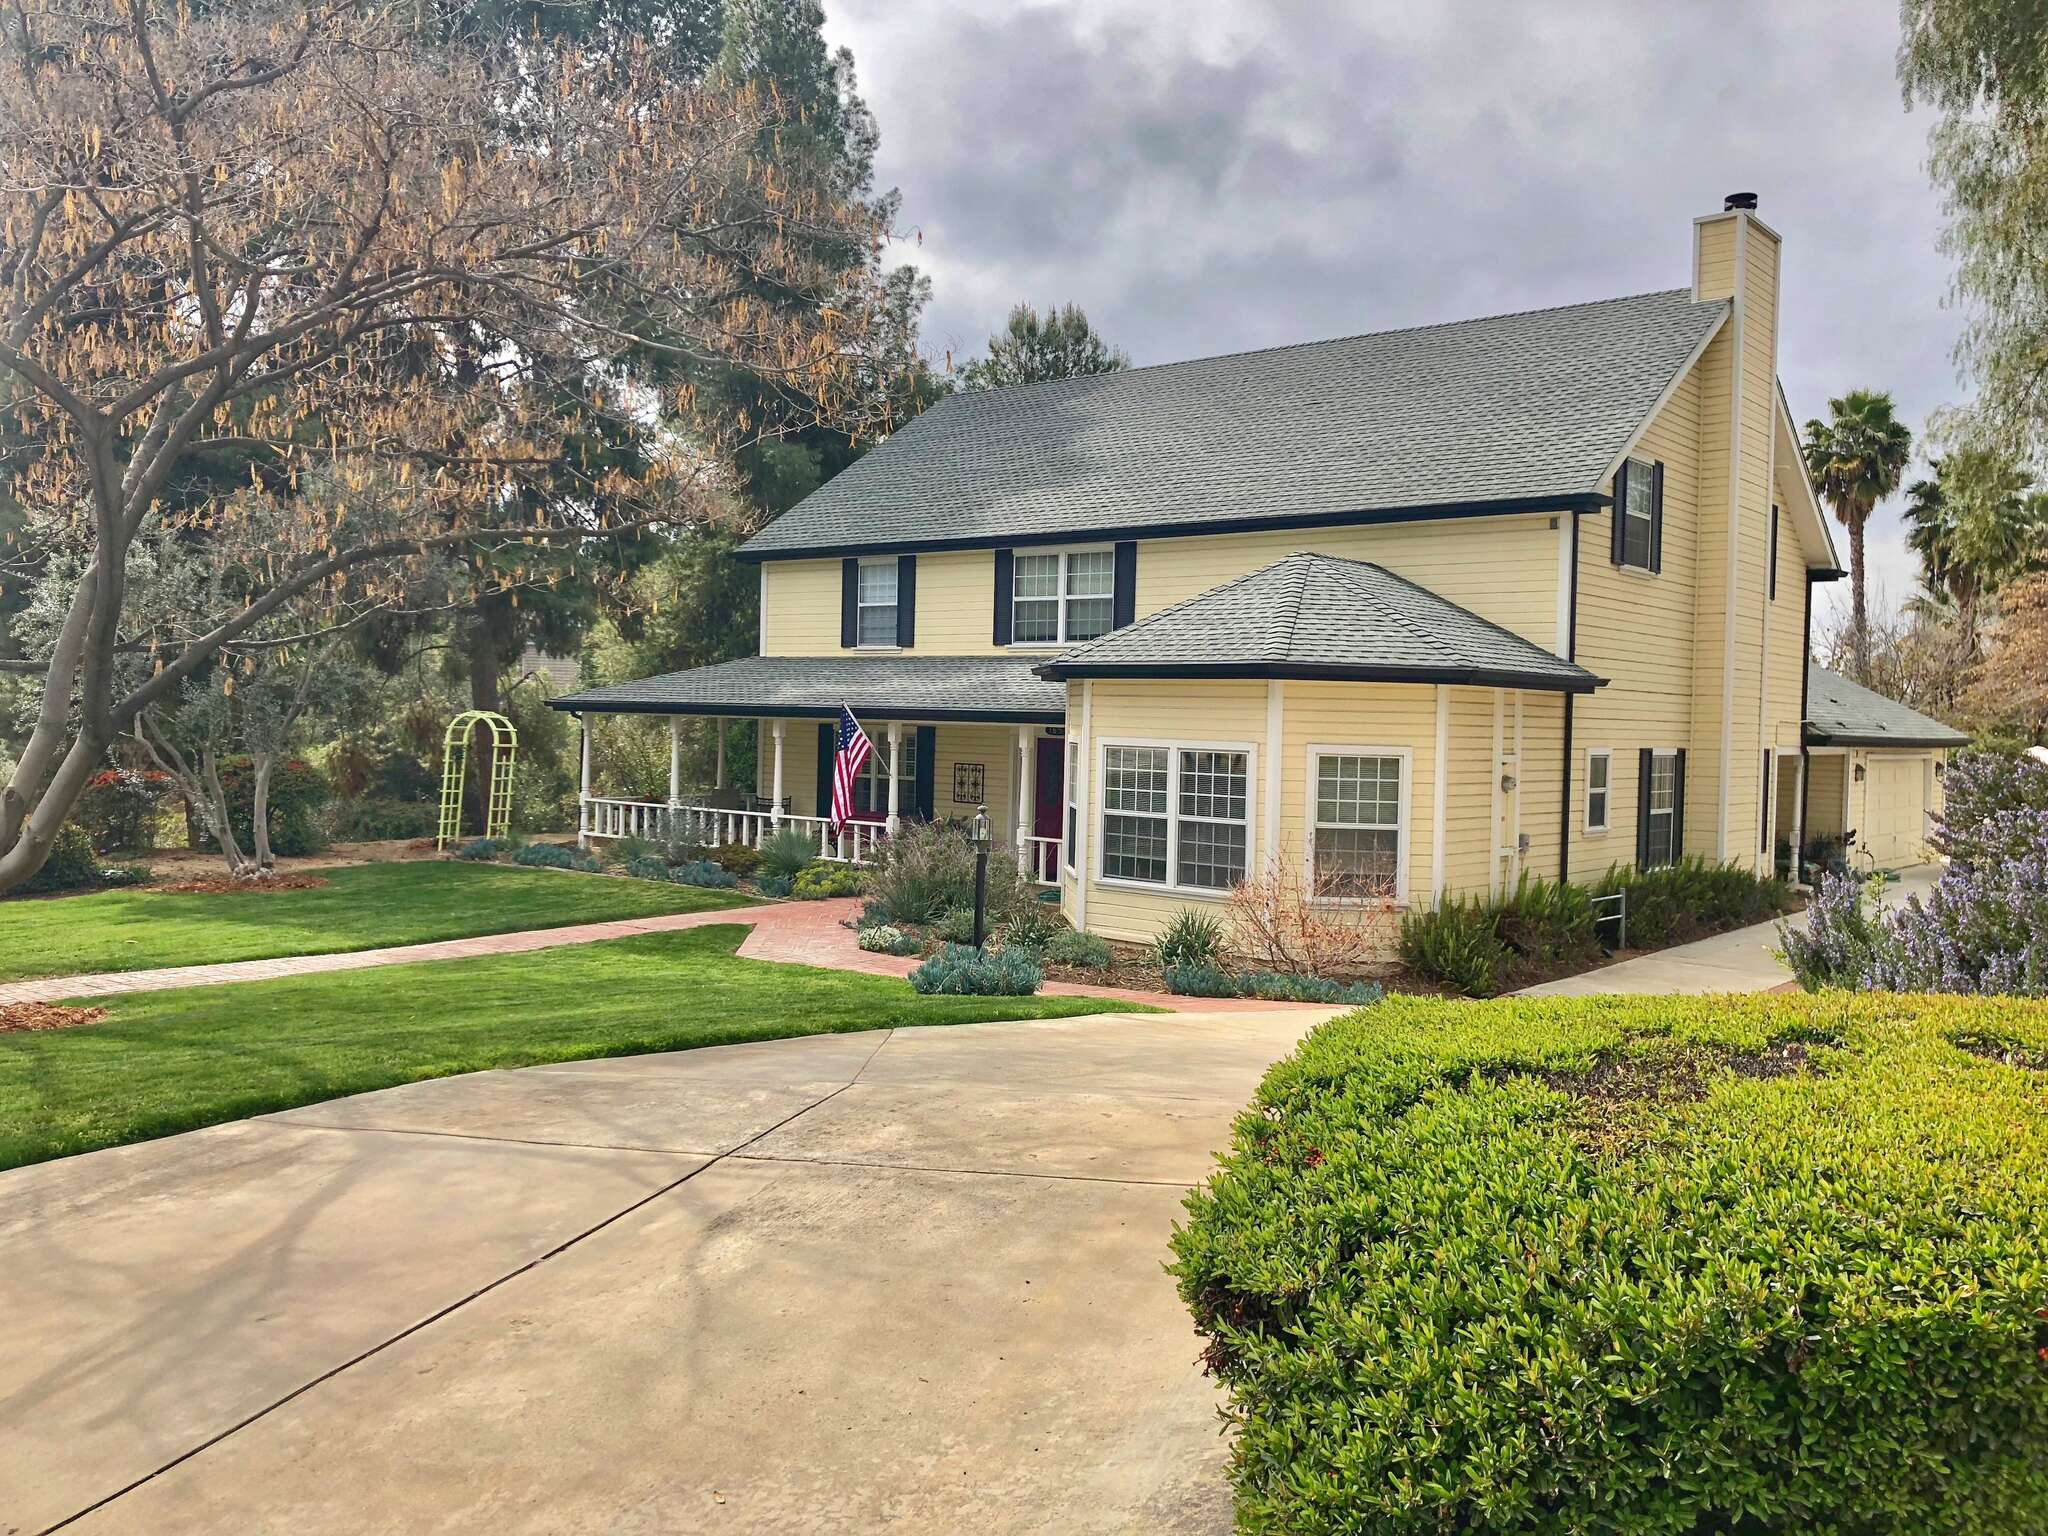 Single Family for Sale at 1654 Ford Street Redlands, California 92373 United States